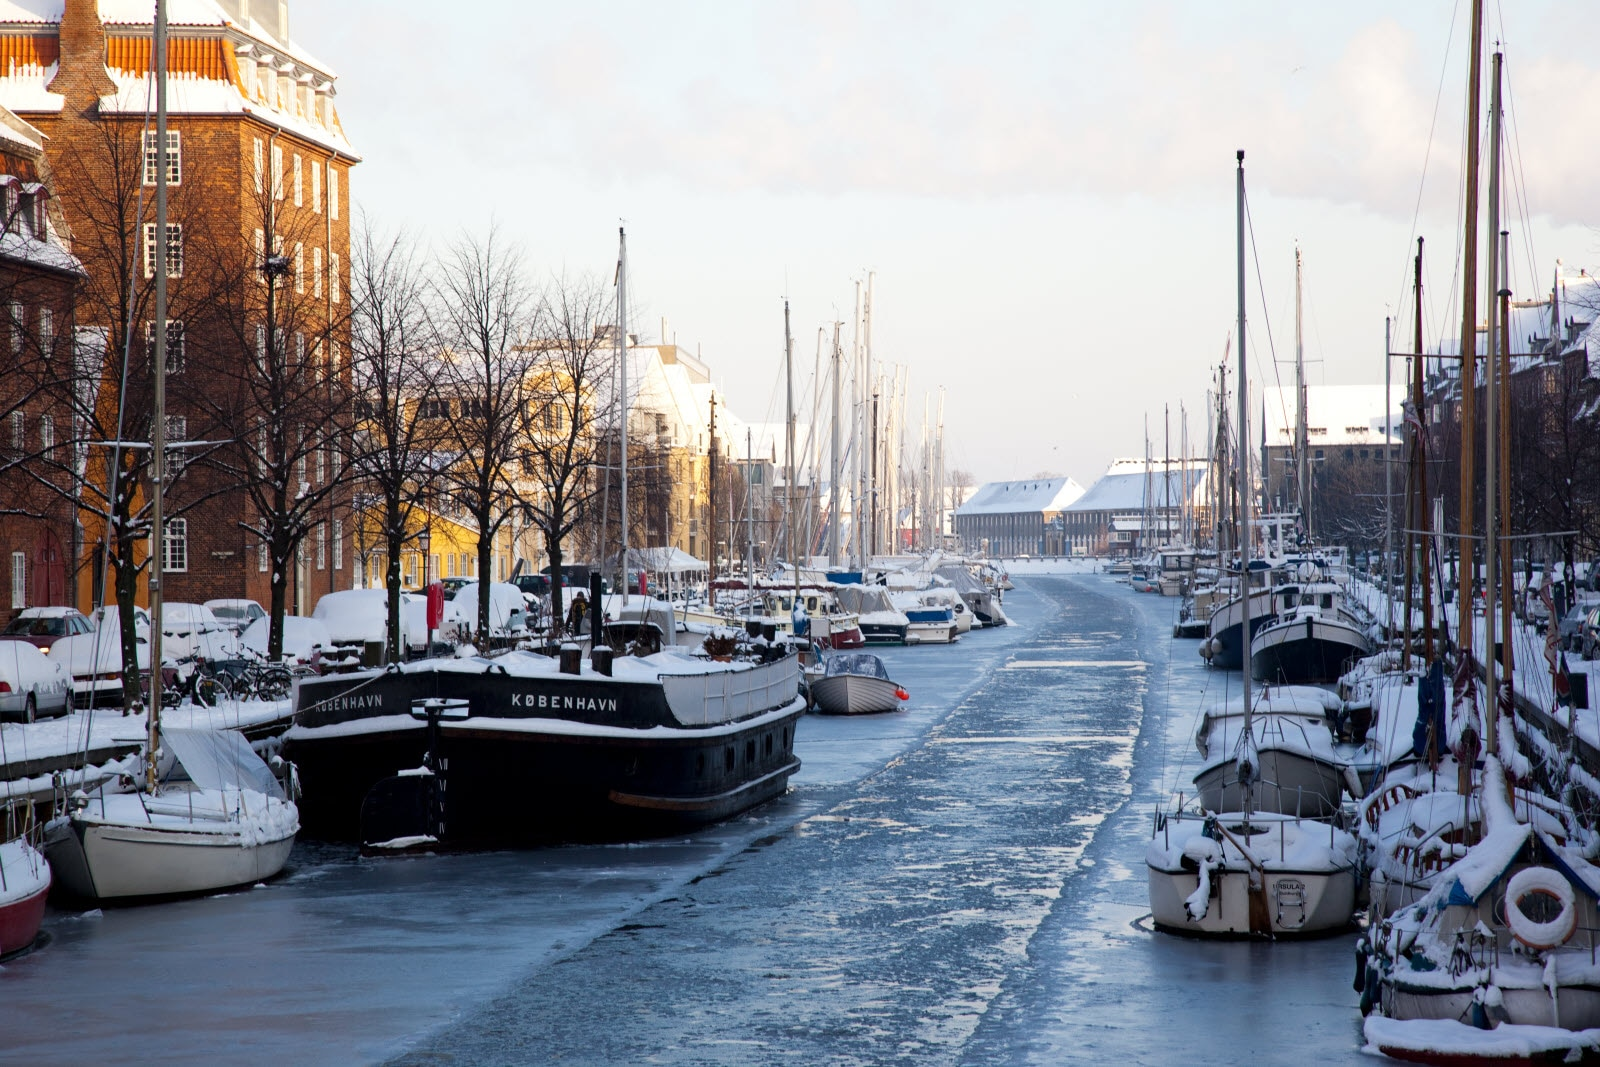 Vinter på Christianshavn